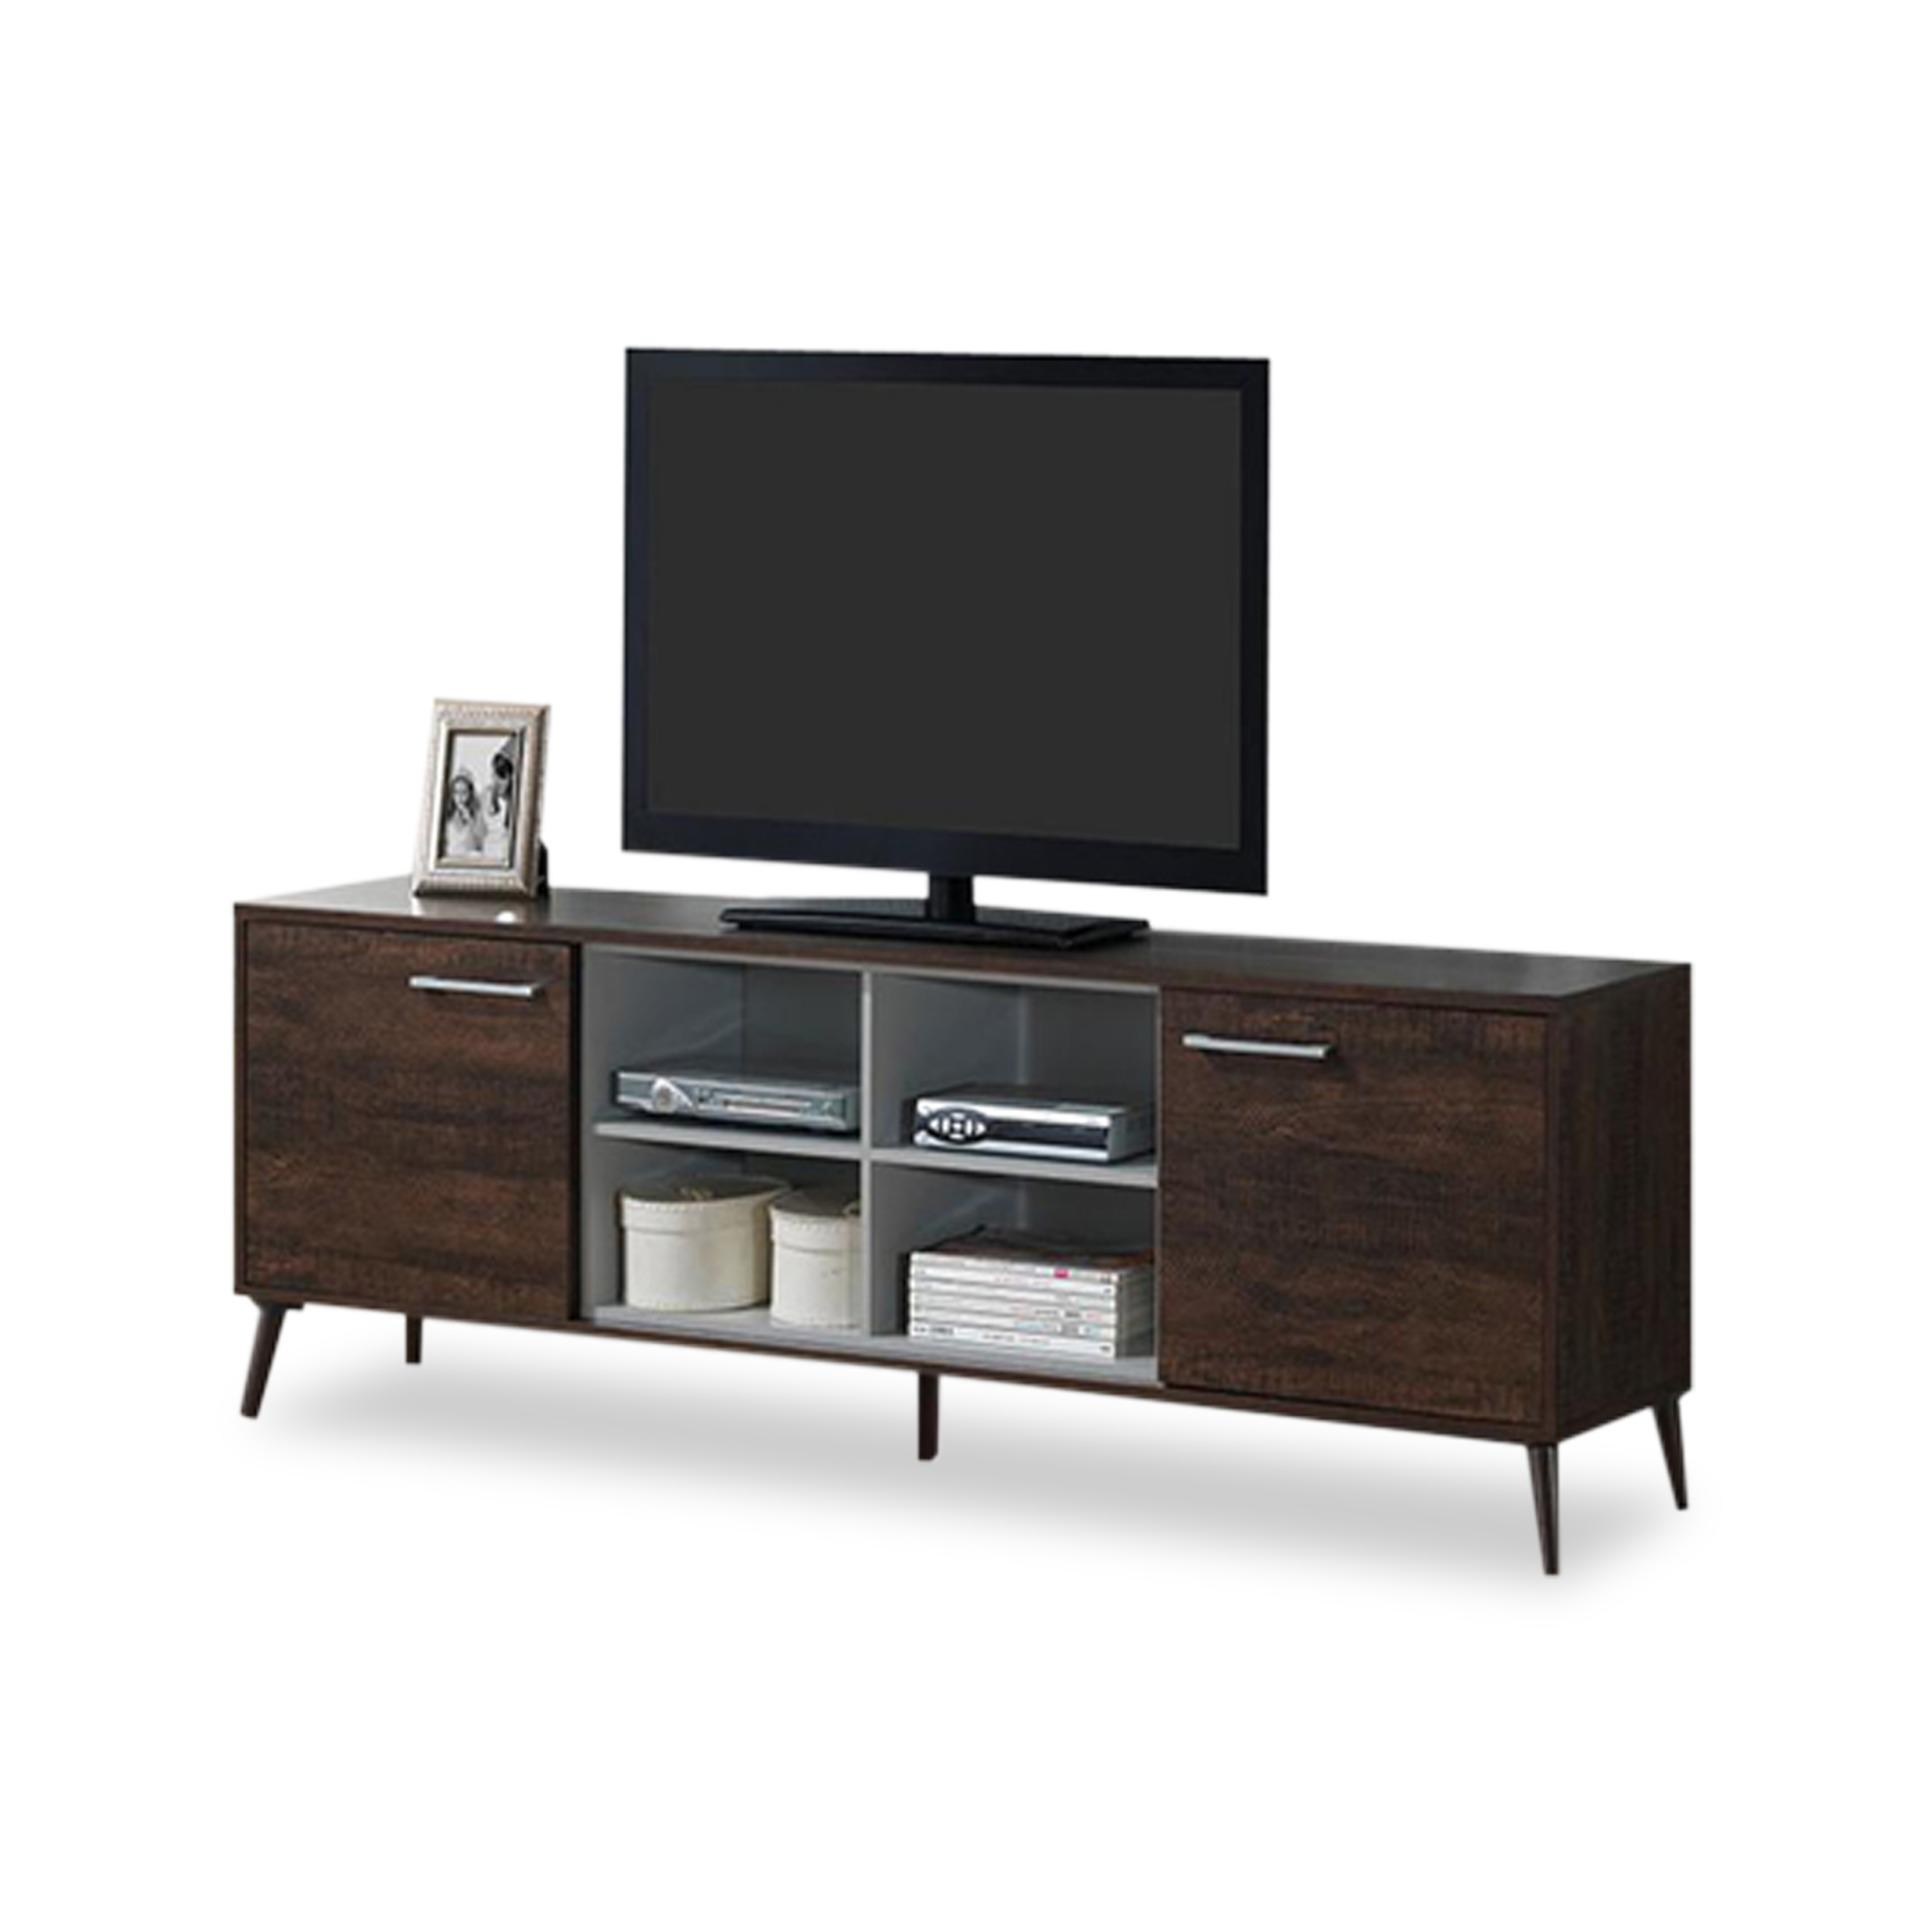 Manon TV Cabinet 1.8m (FREE DELIVERY)(FREE ASSEMBLY)